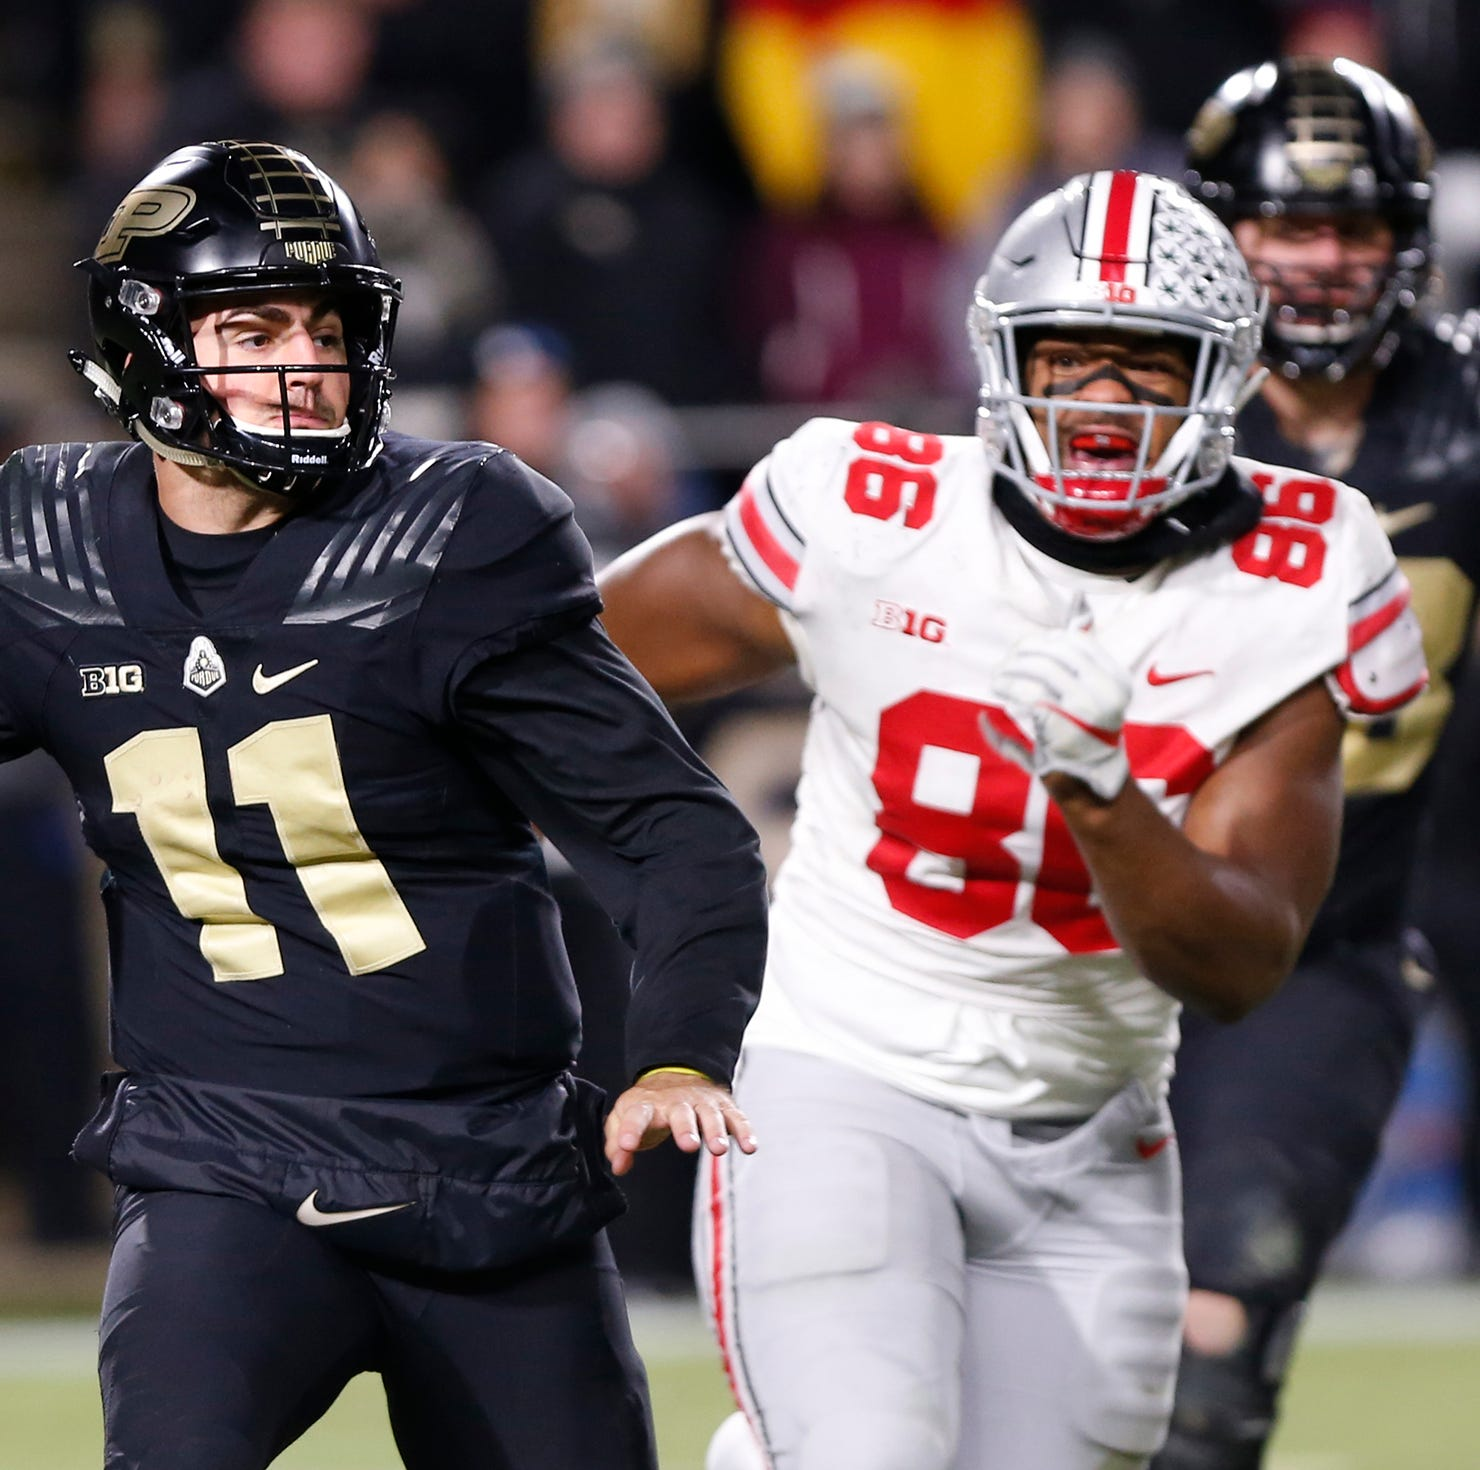 Purdue football makes history with Big Ten weekly awards sweep